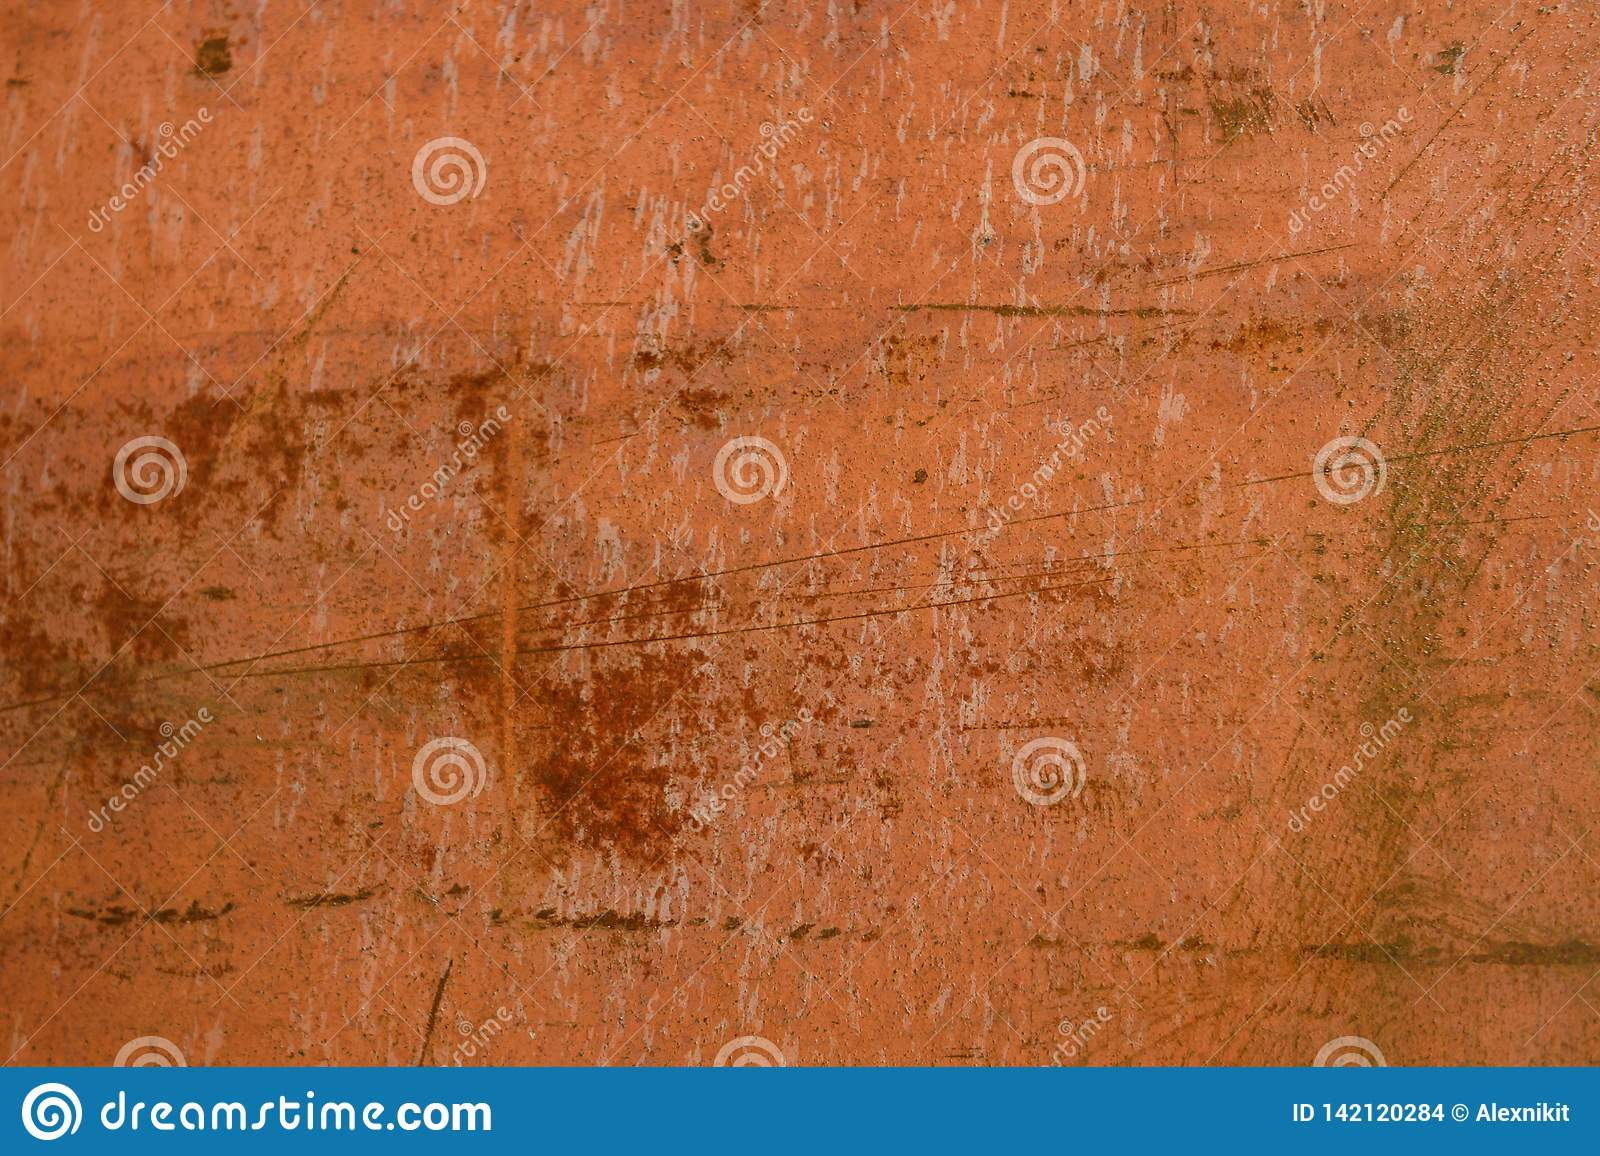 Rusty metal surface with scratches